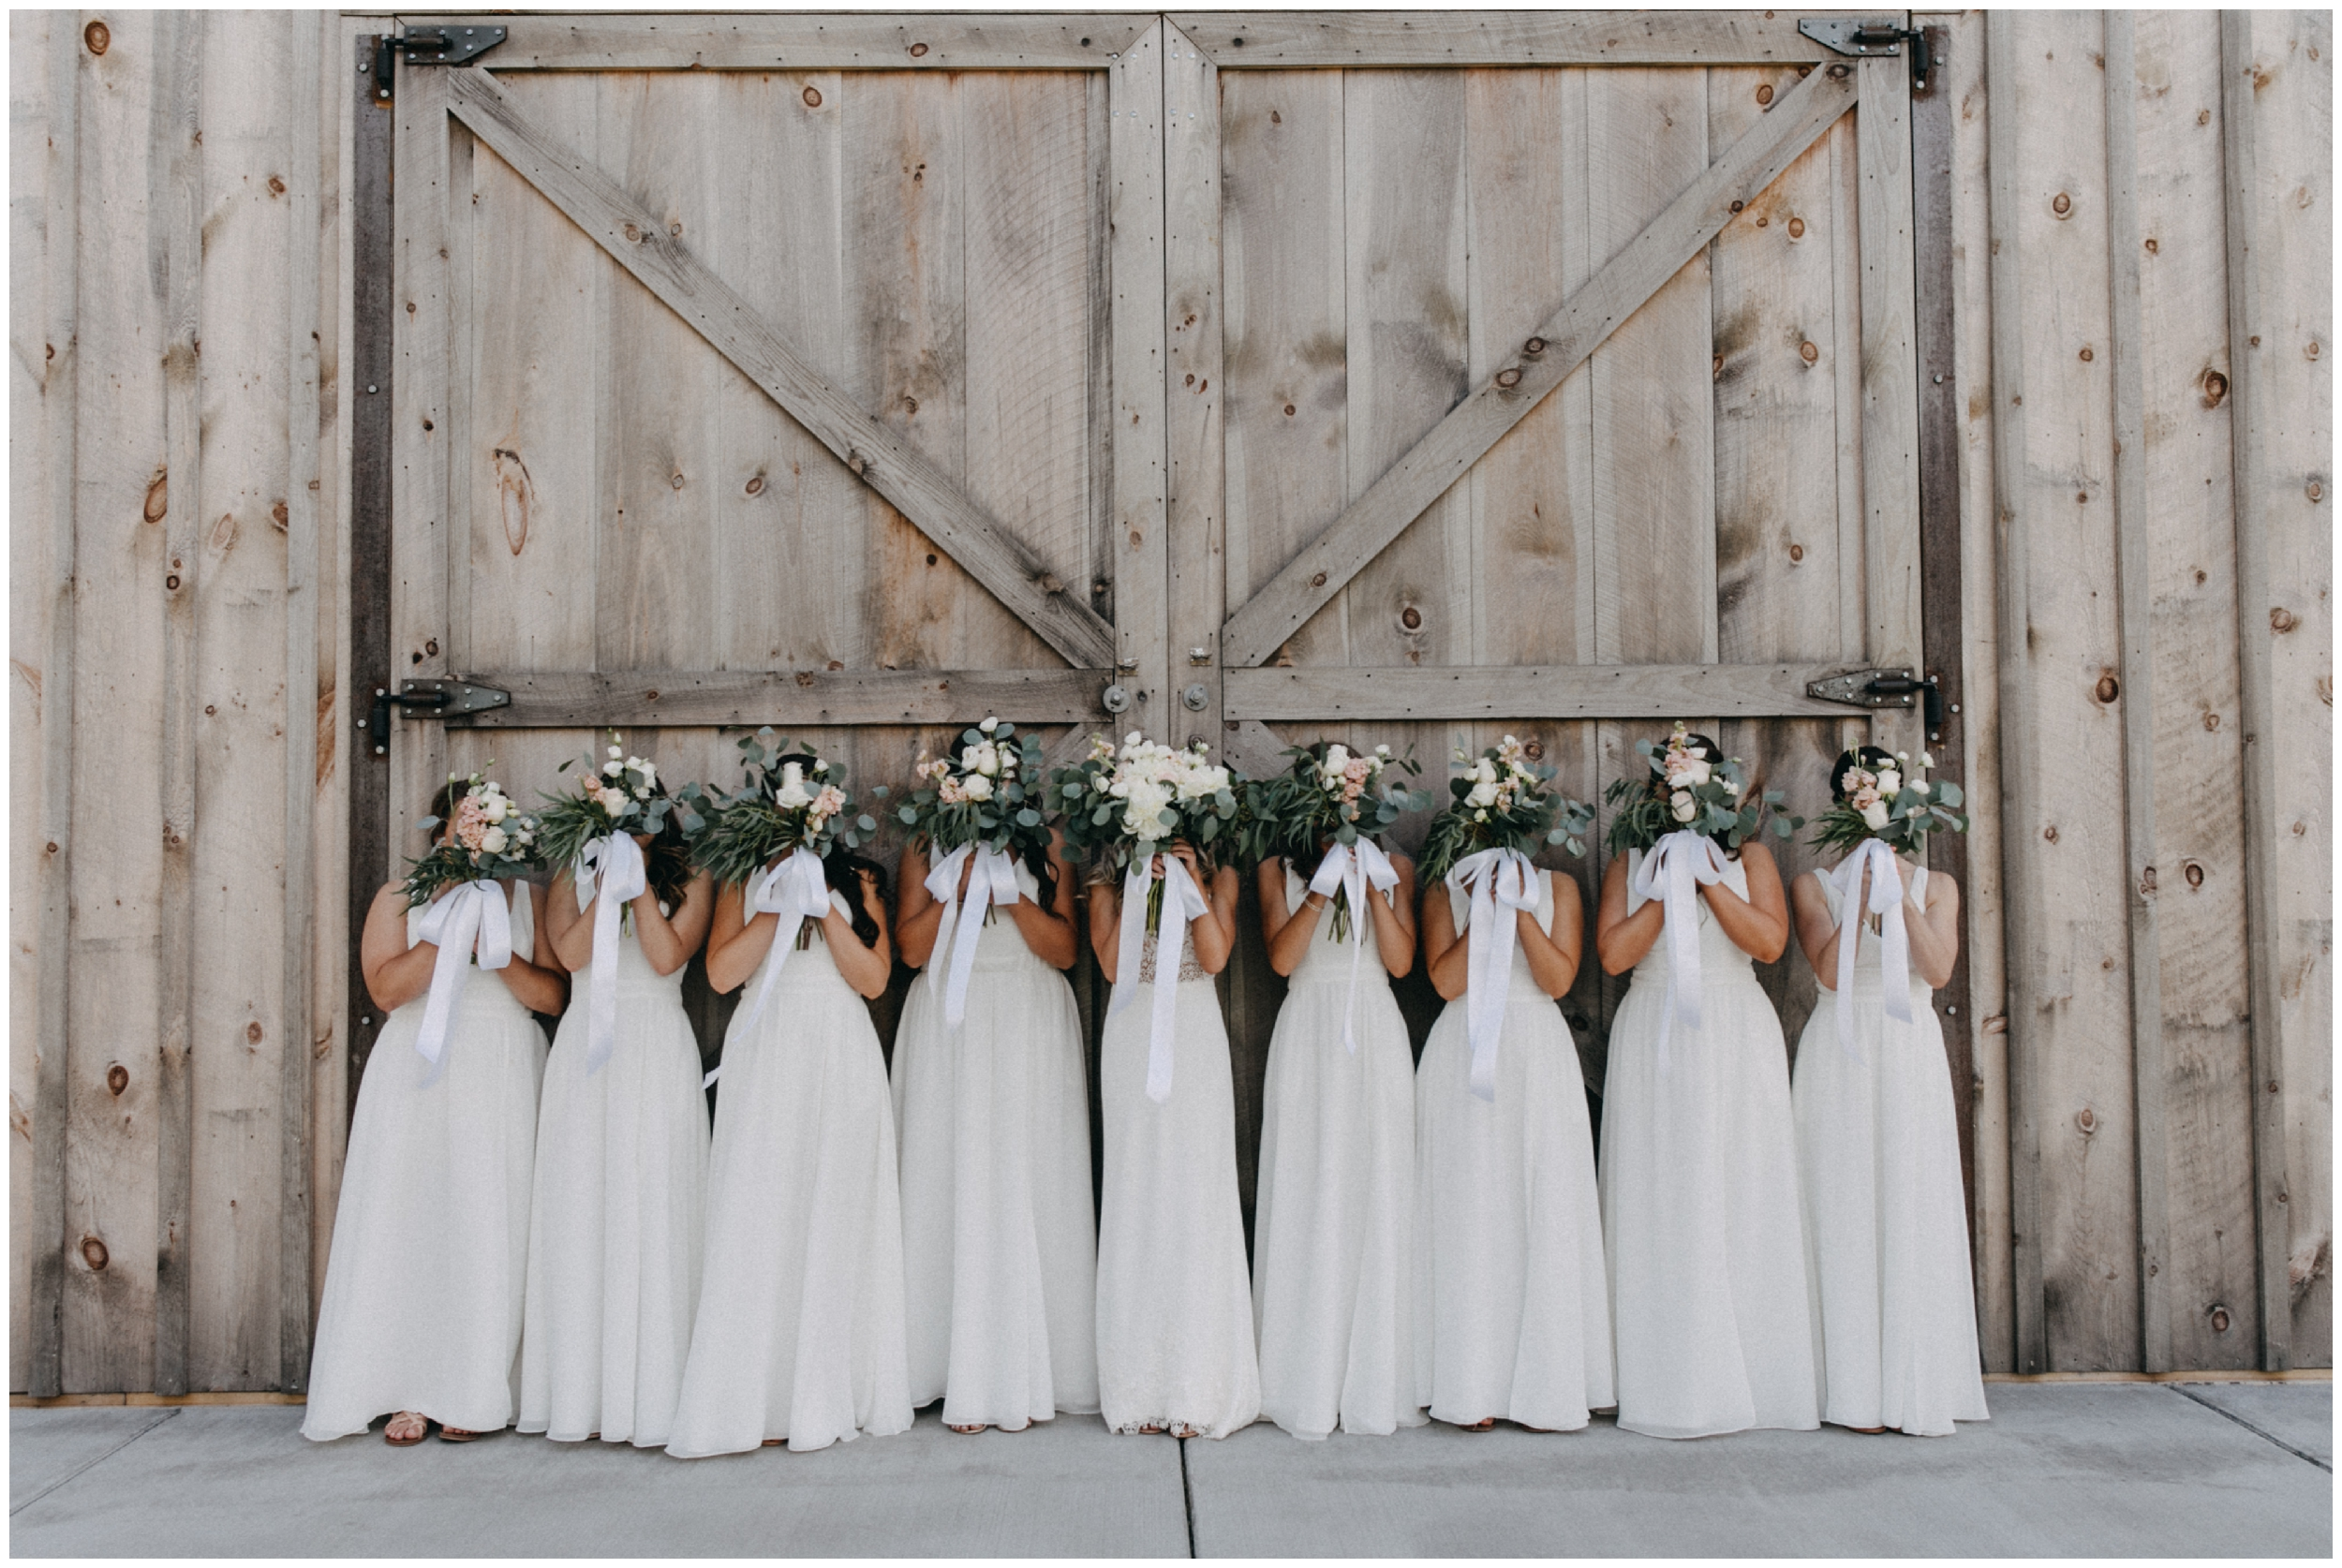 Bridesmaids wearing all white dresses at Creekside Farm wedding